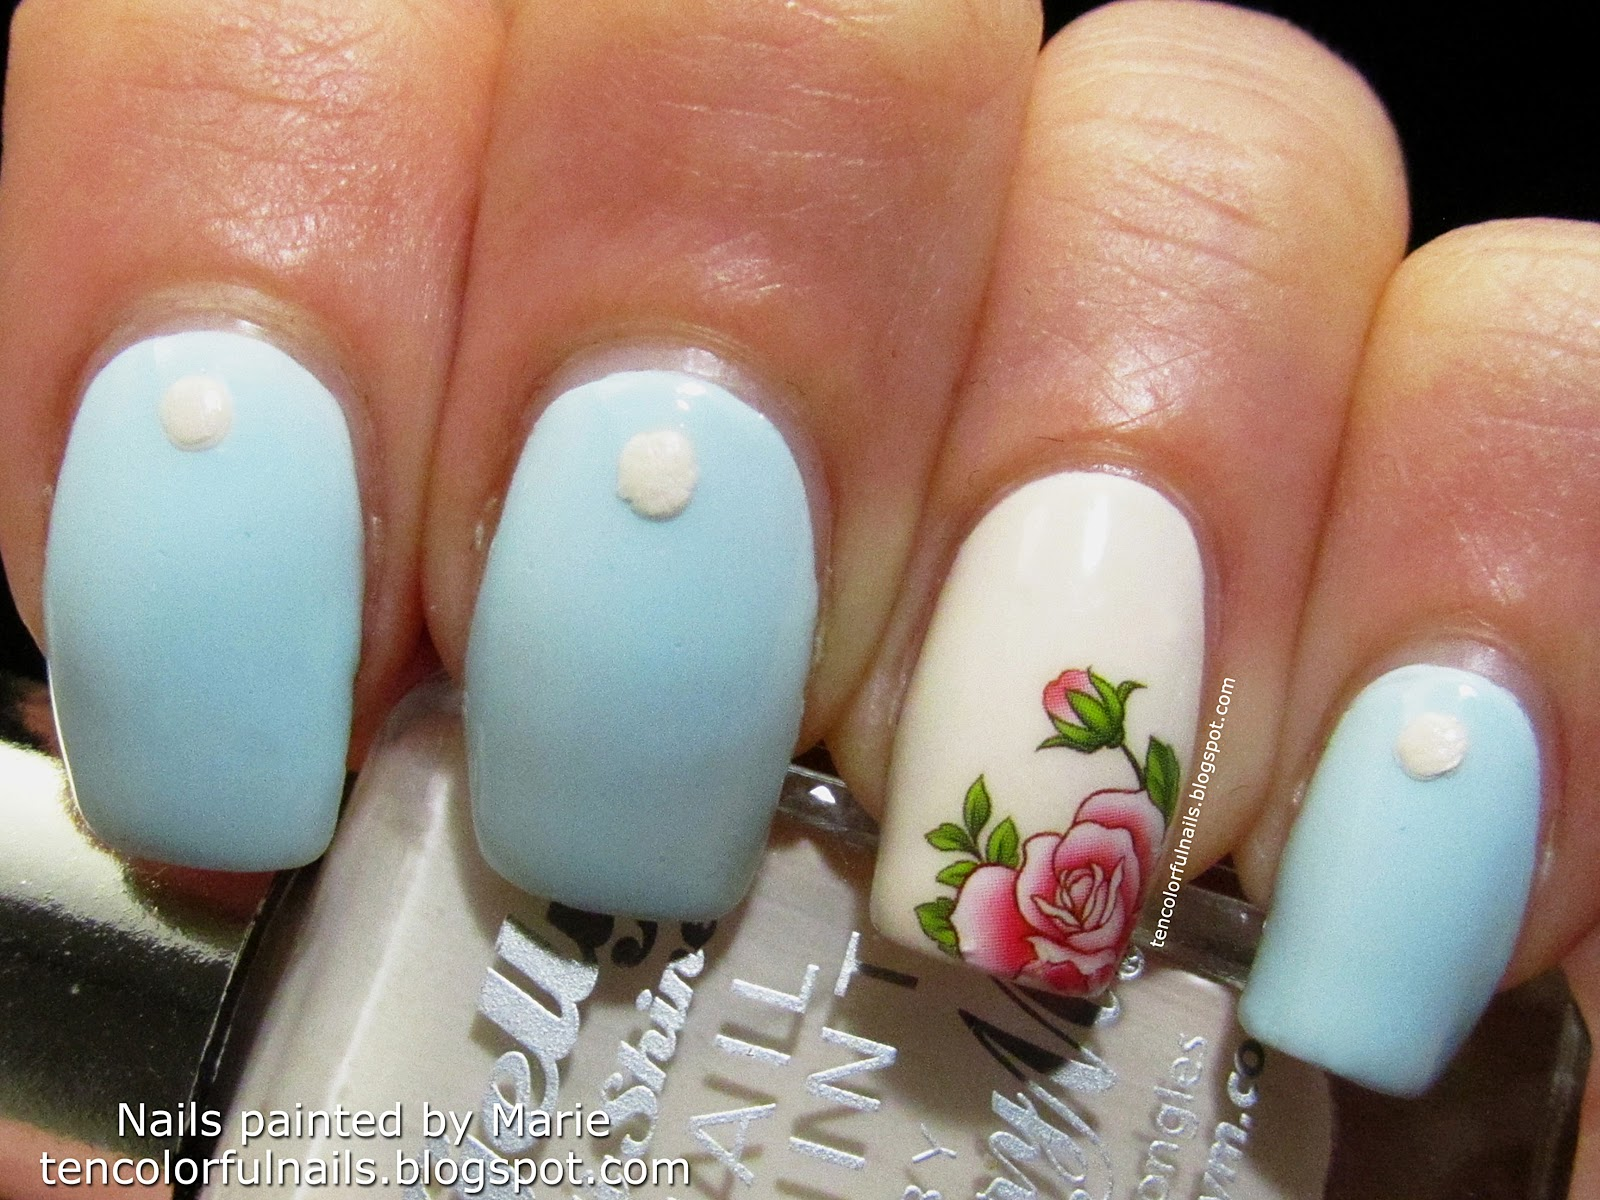 Ten Colorful Nails: Blue Manicure with Rose Accent Nail